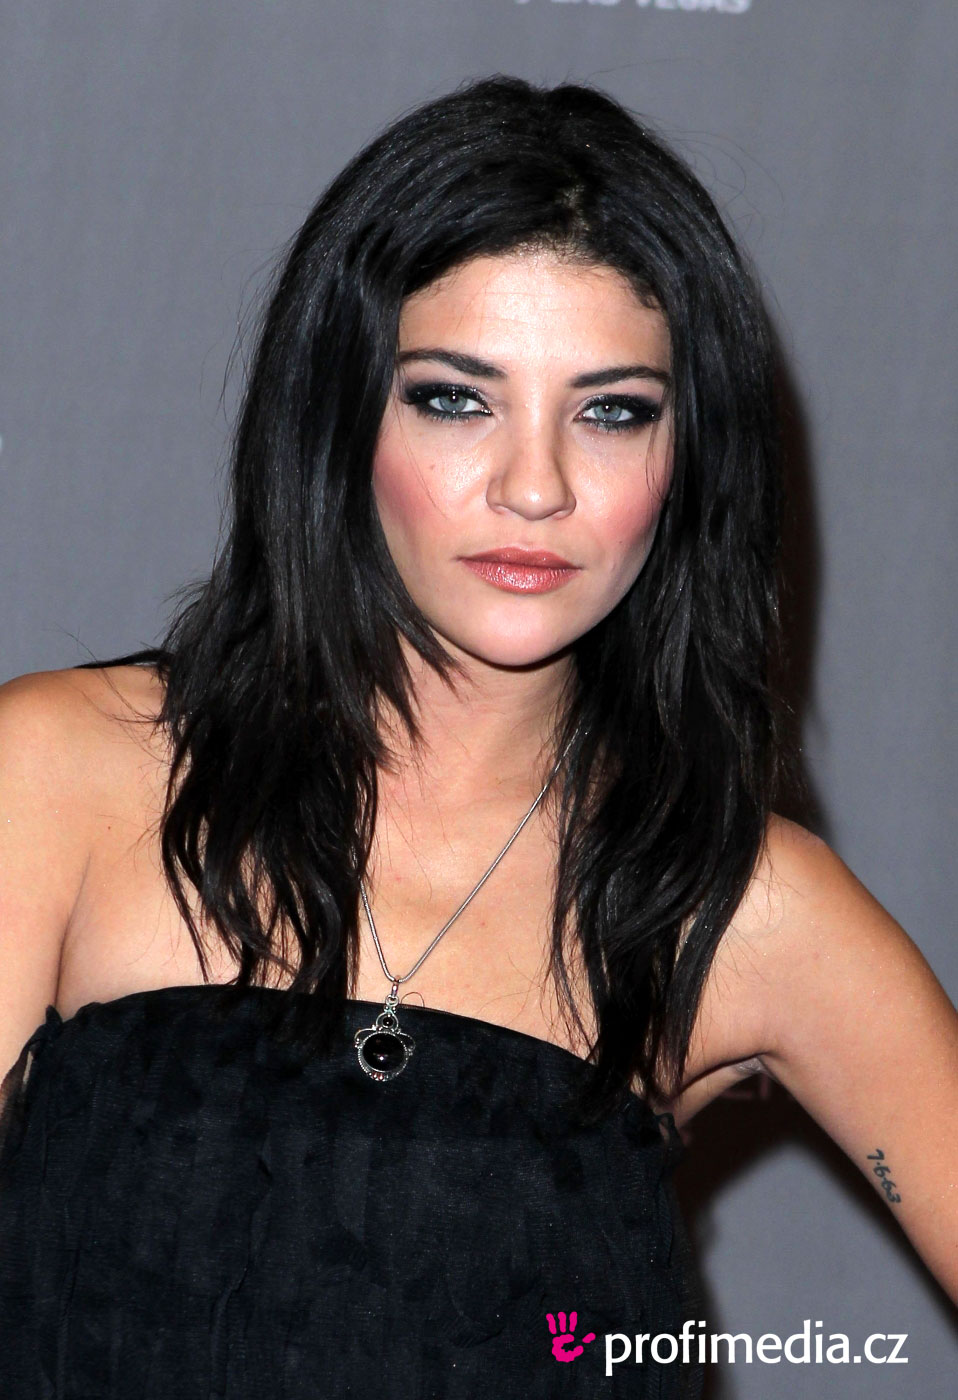 The 32-year old daughter of father (?) and mother(?), 168 cm tall Jessica Szohr in 2017 photo